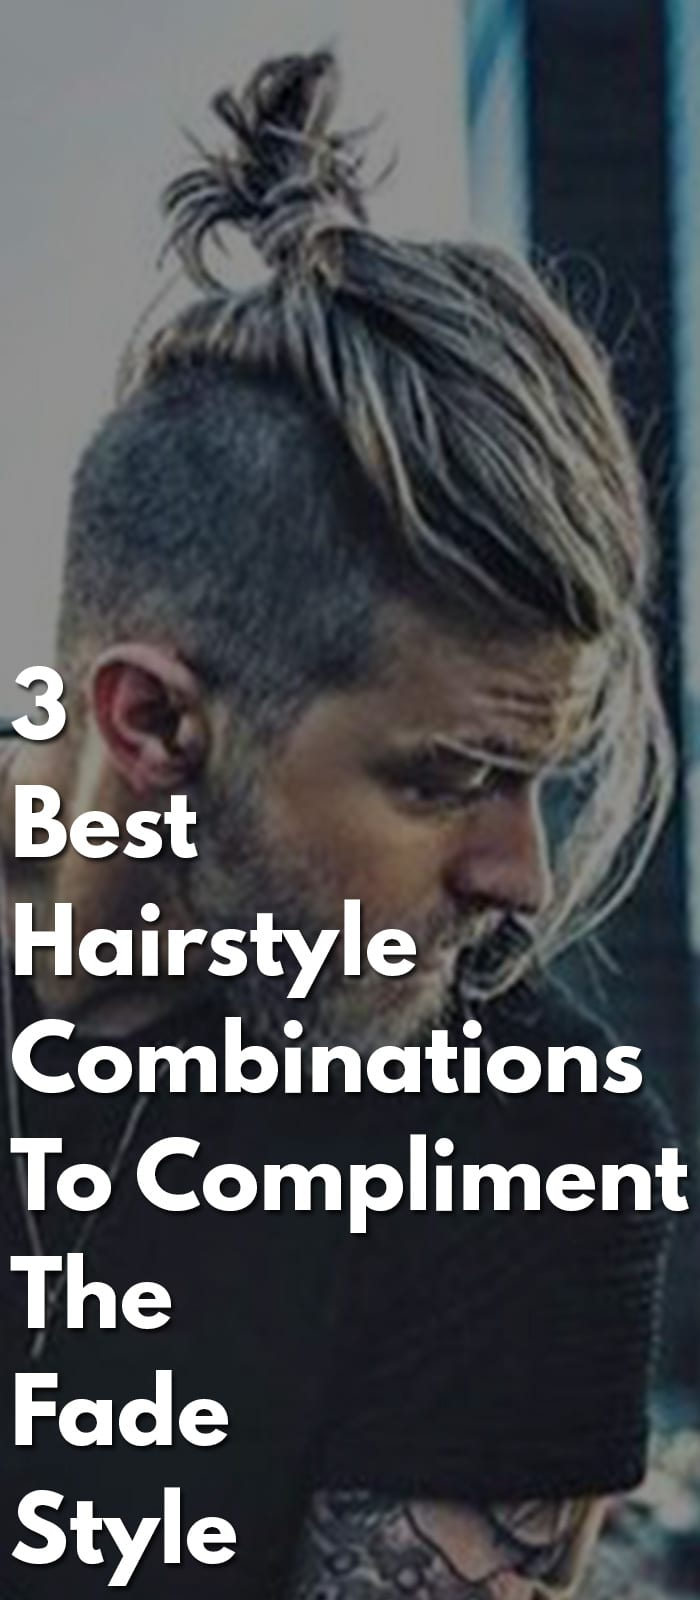 3-Best-Hairstyle-Combinations-To-Compliment-The-Fade-Style.